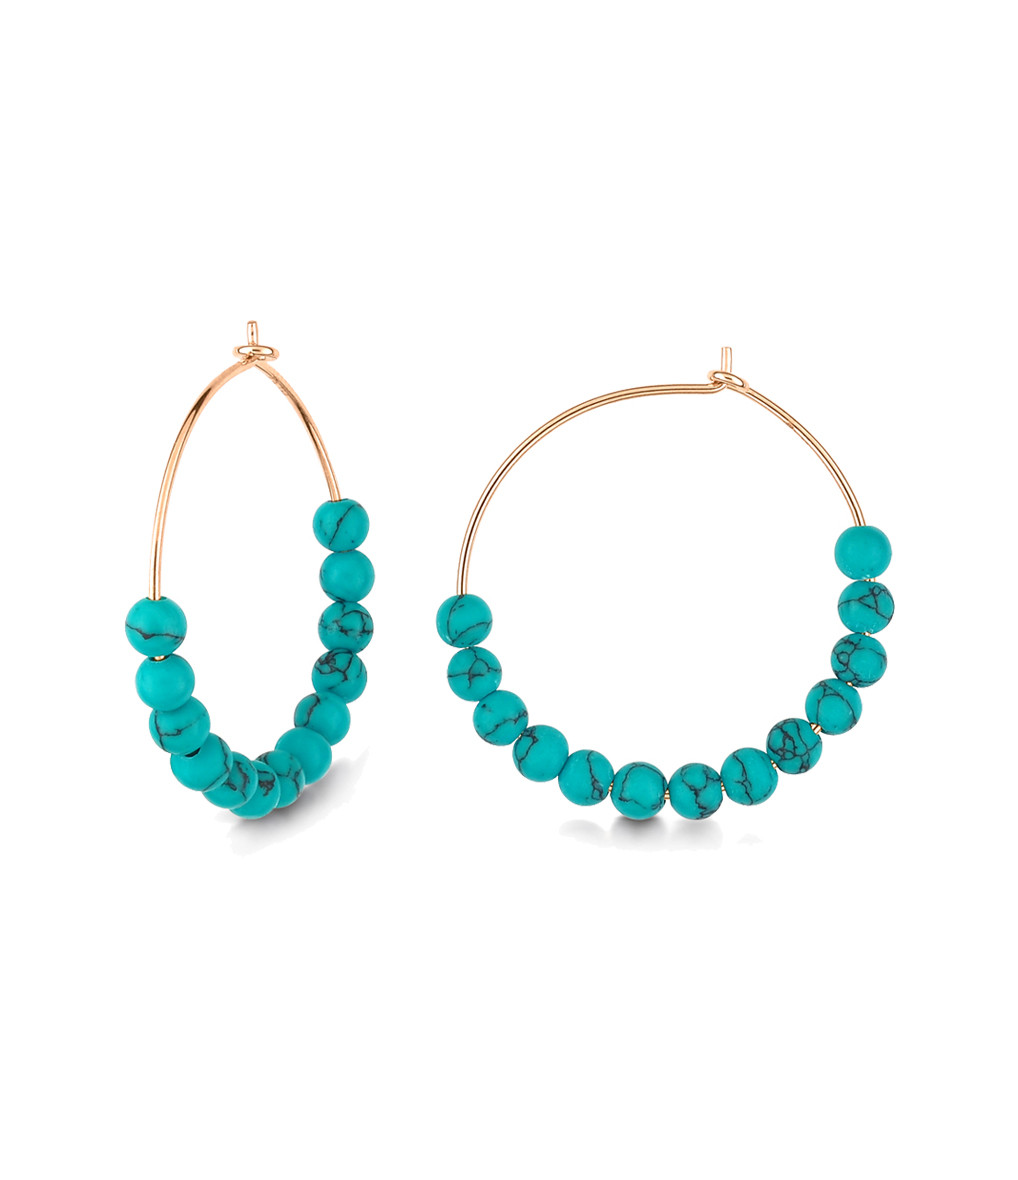 GINETTE_NY - Créoles Maria Or Rose Turquoise